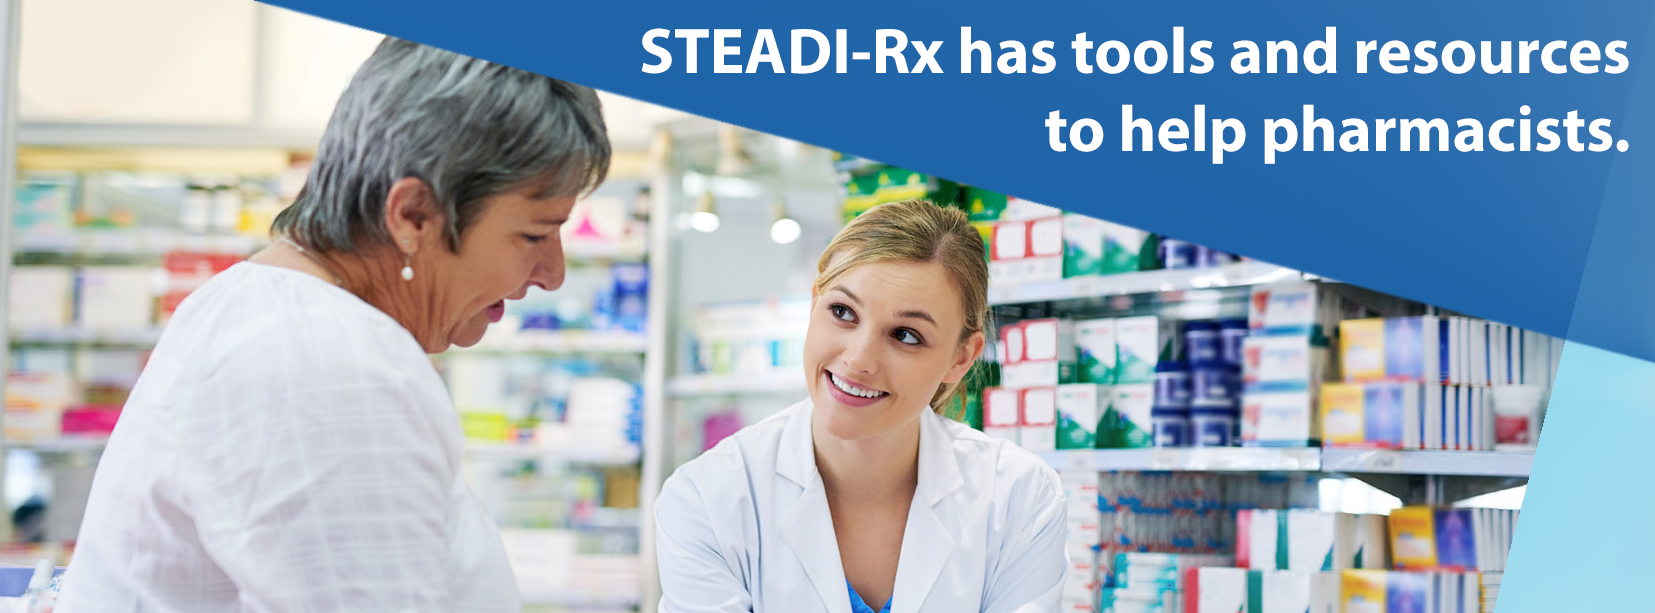 STEADI-Rx has tools and resources to help pharmacists.